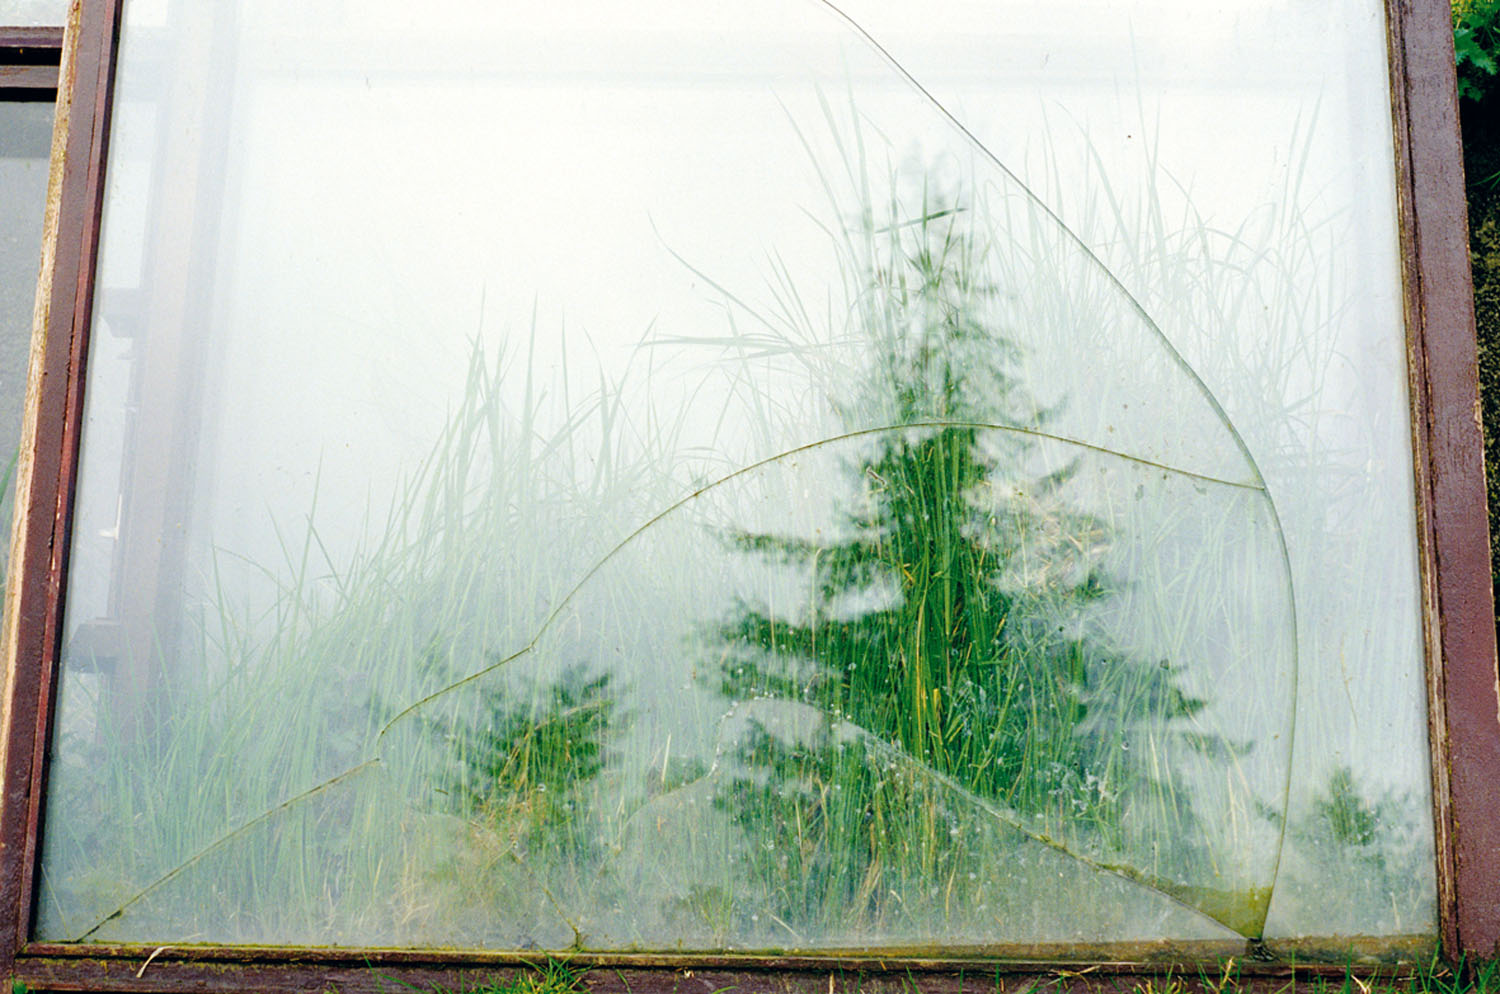 Ruth McHugh_-_Rural Realm_diamond-mount lambda print, ed. of 10_50.8 x 33.6cm.jpg